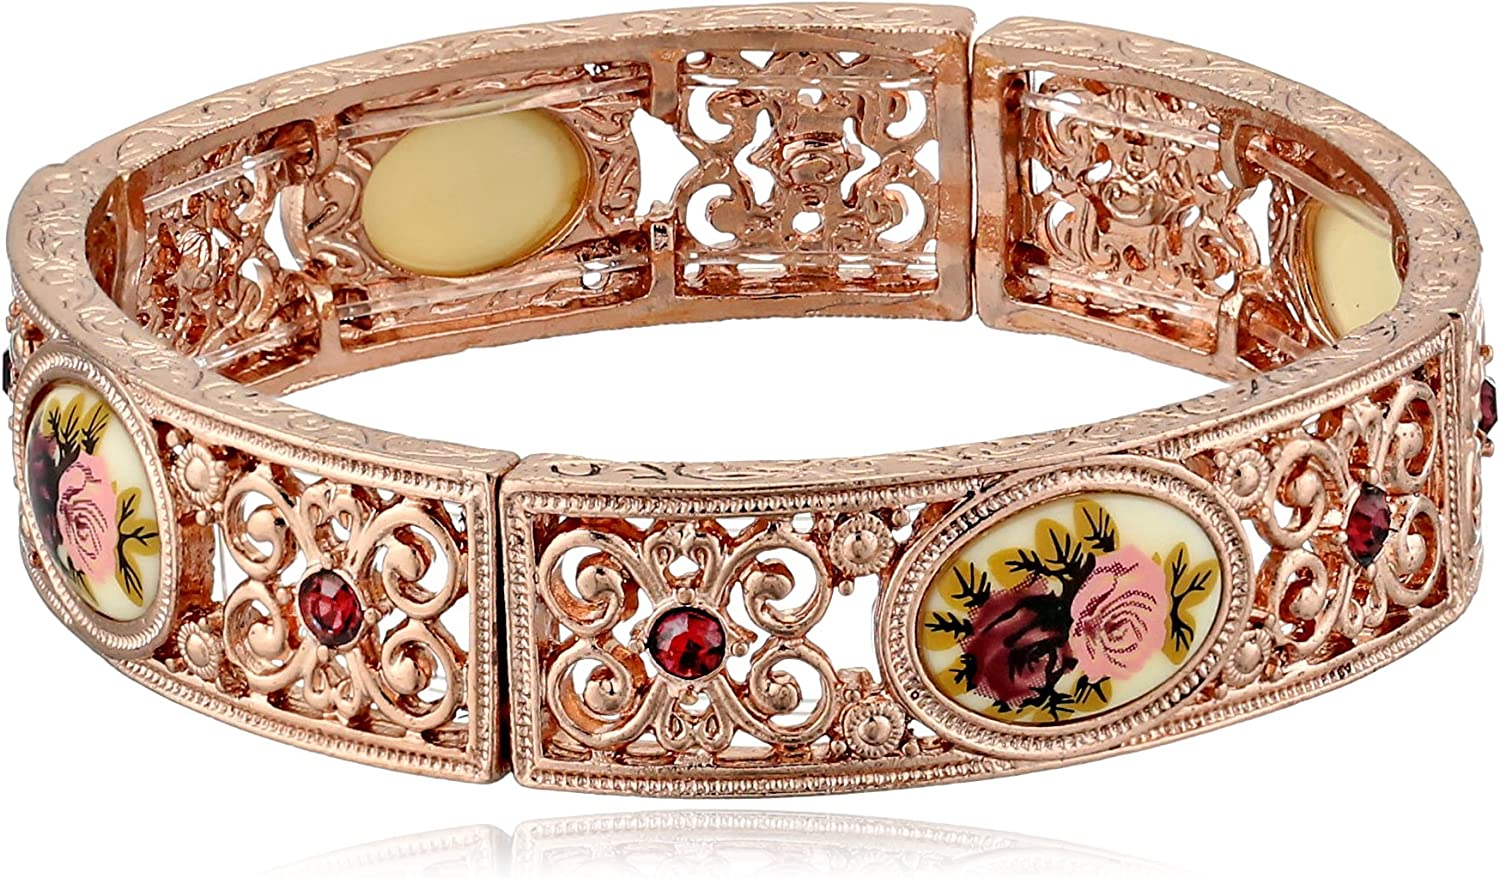 Today's only 1928 Jewelry Victorian Inspired Floral New Free Shipping Manor House Rose Gold-Ton